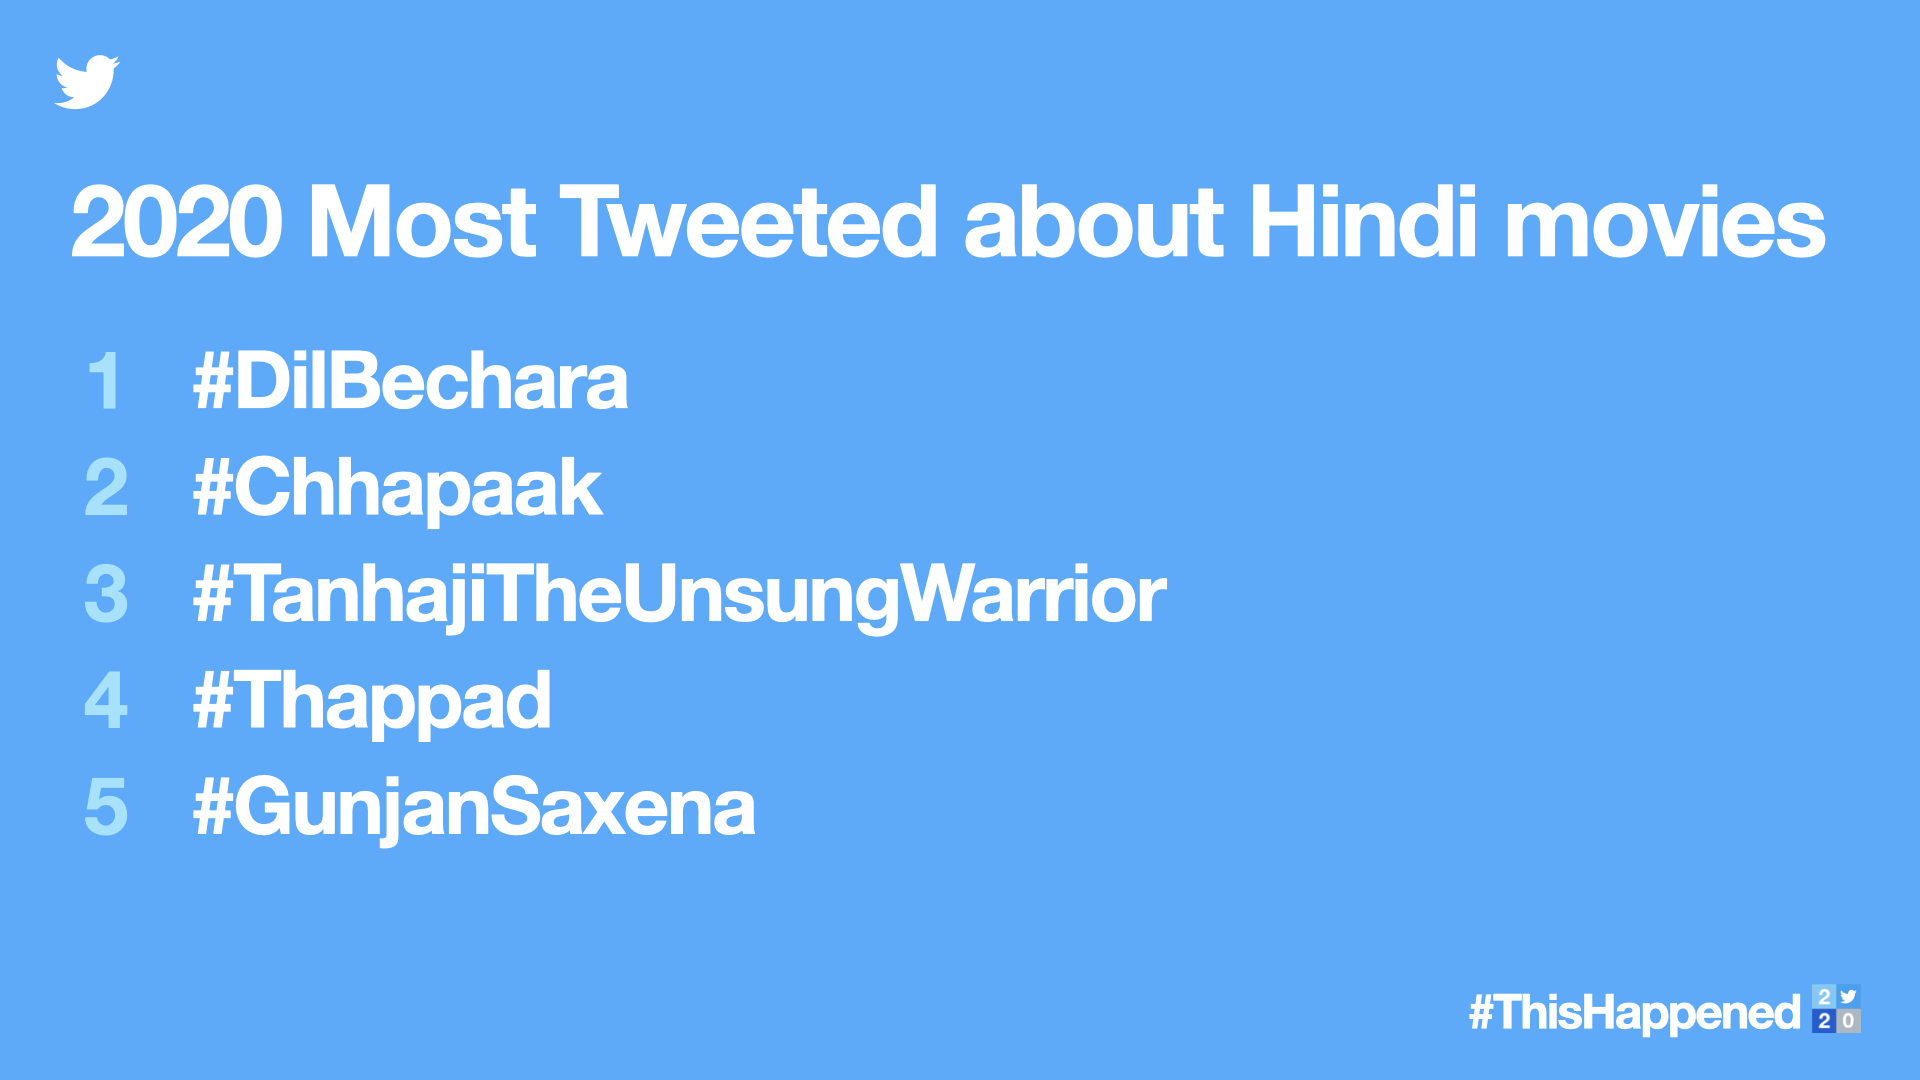 List of Hindi Movies that Topped the List on Twitter